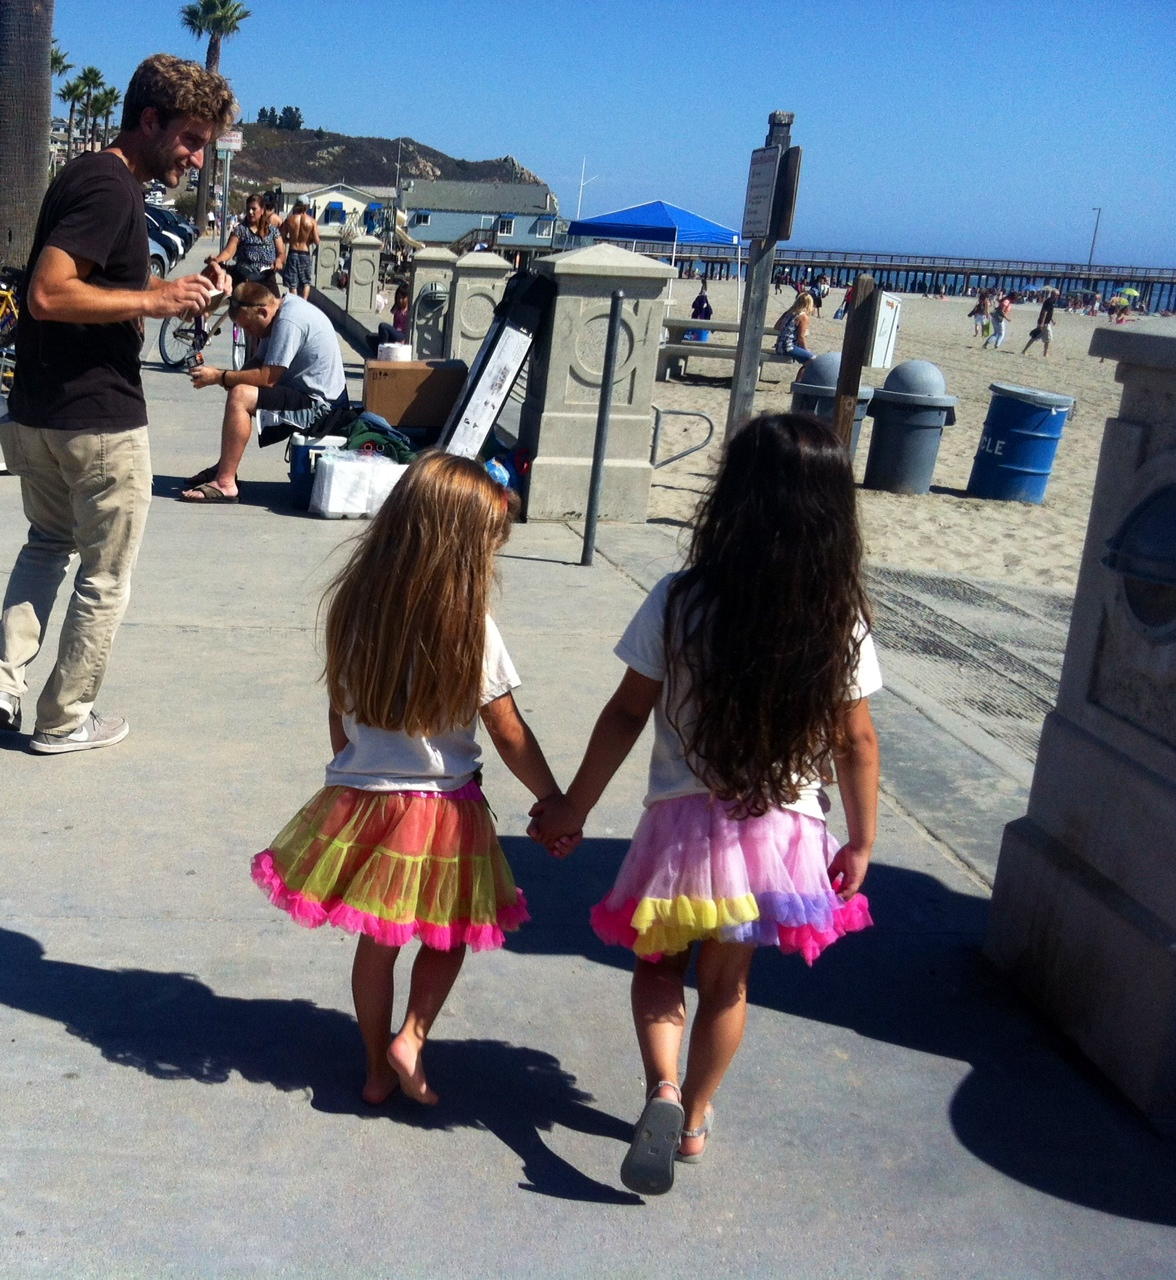 Sisterly love, exploring the town of Avila Beach